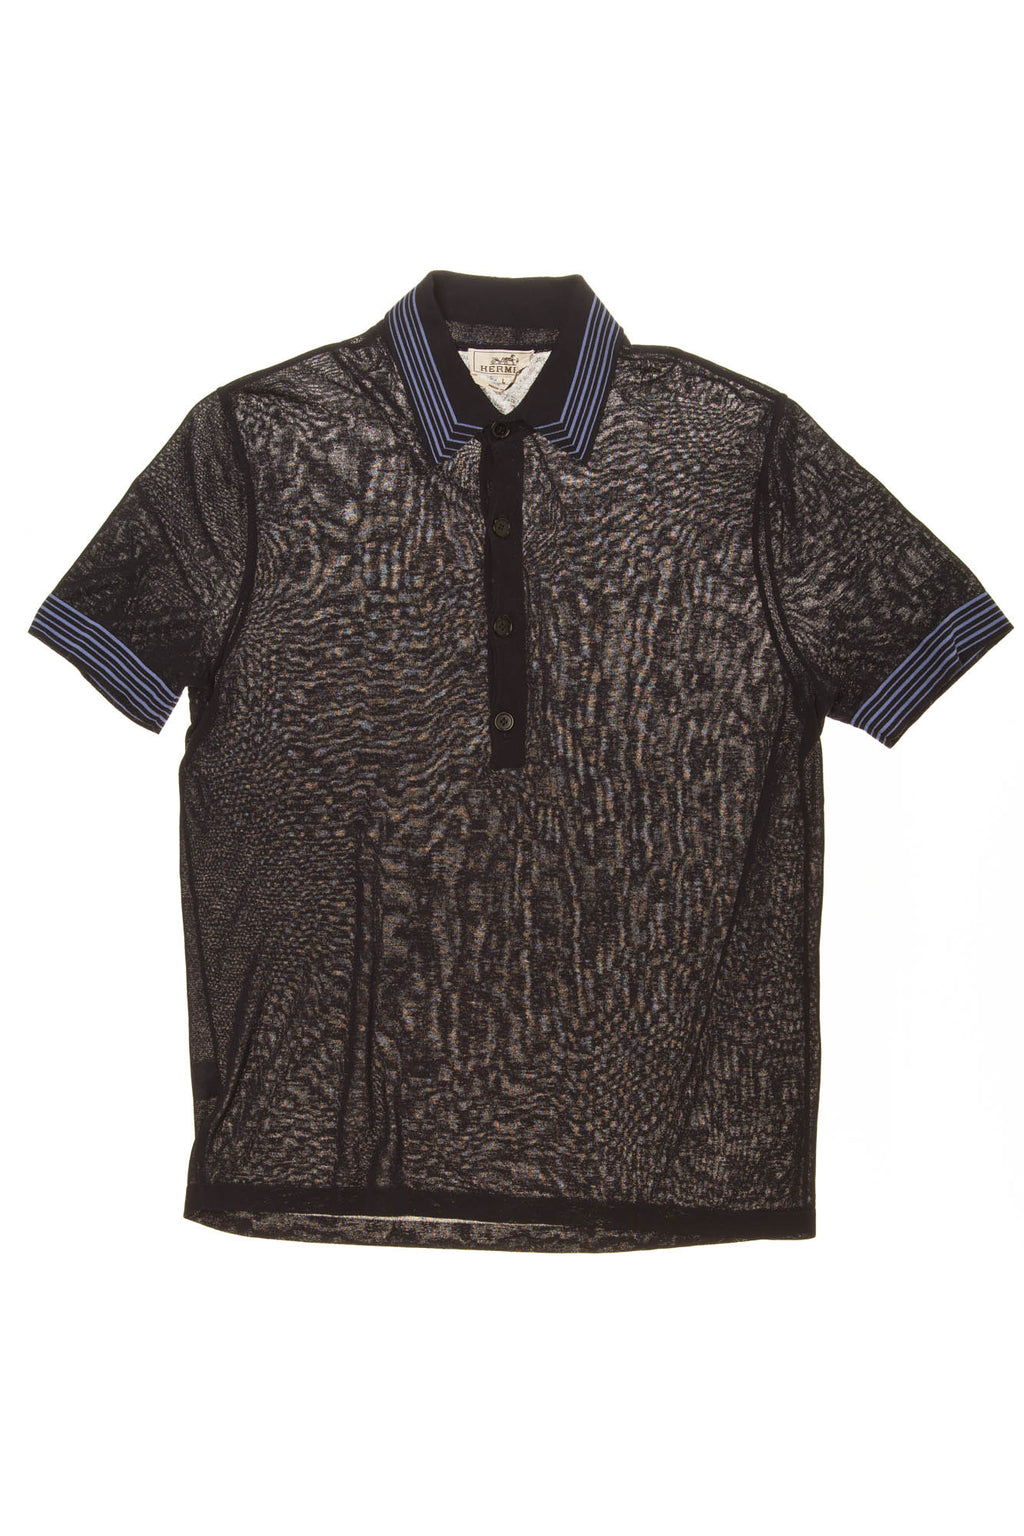 Hermes - Navy Short Sleeve Polo Shirt - L